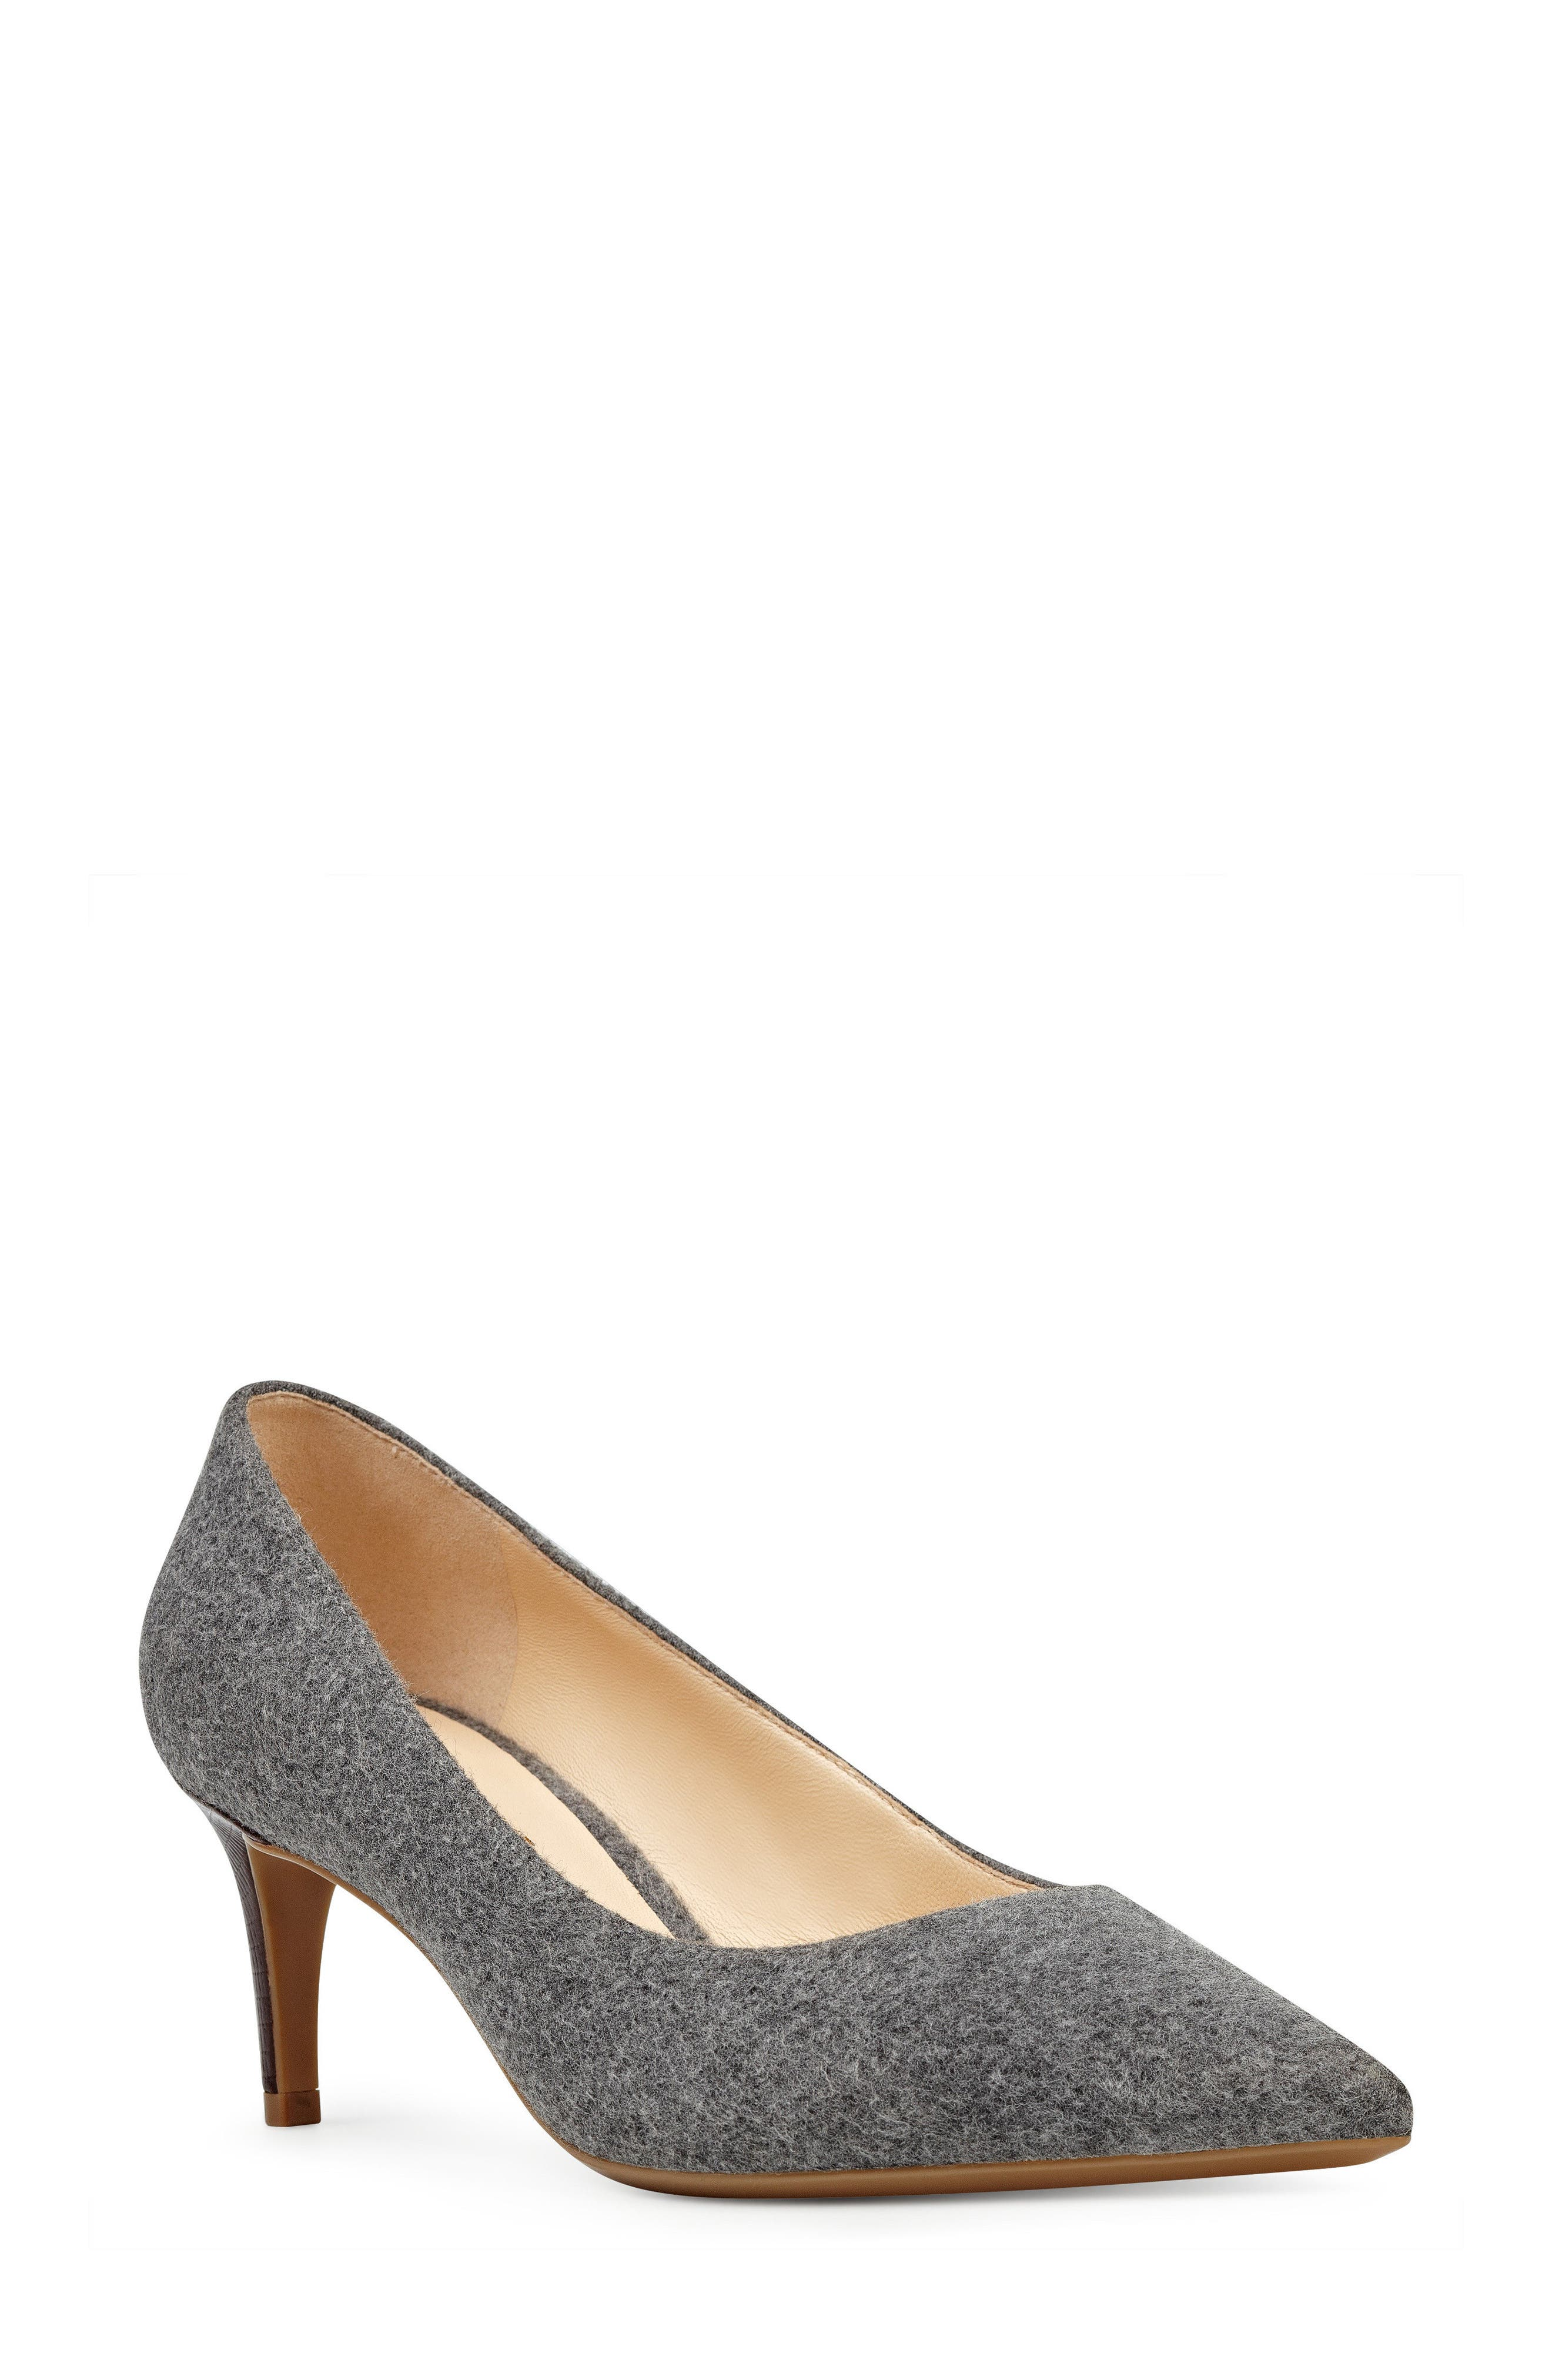 Soho Pointy Toe Pump,                             Main thumbnail 7, color,